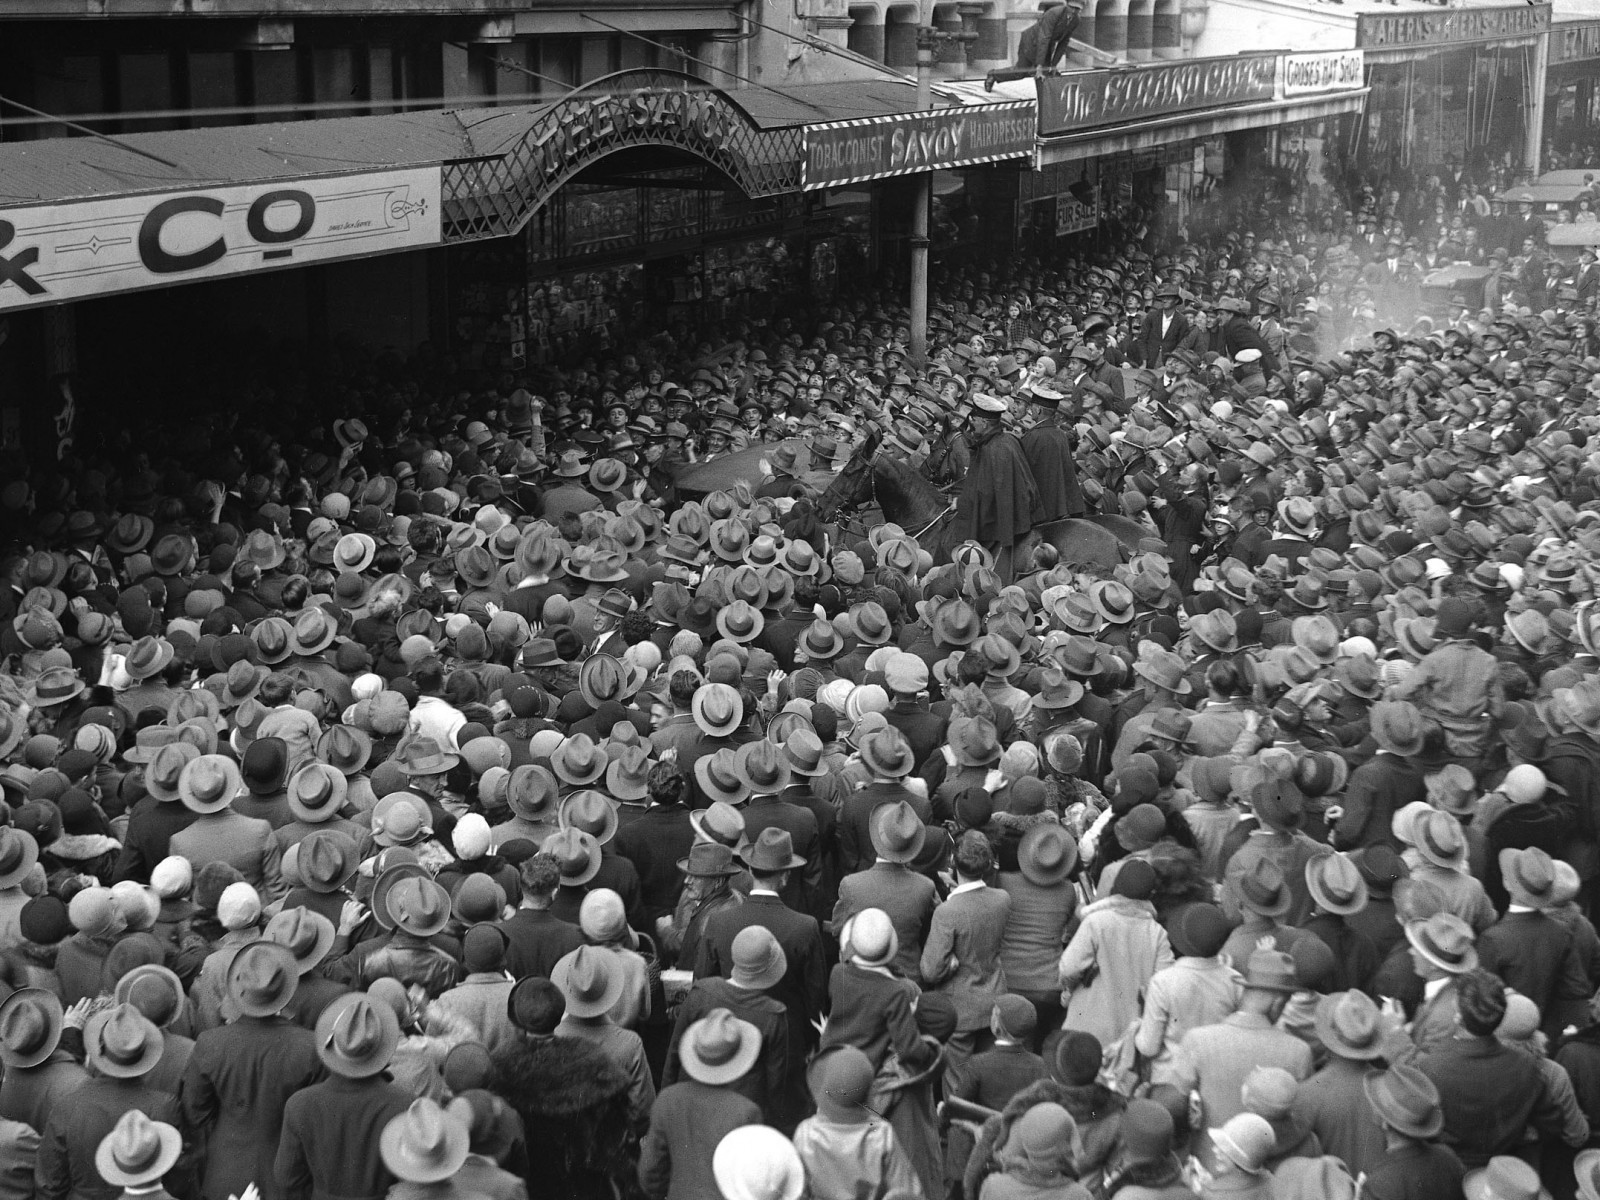 Crowds surge to get a glimpse of Amy Johnson